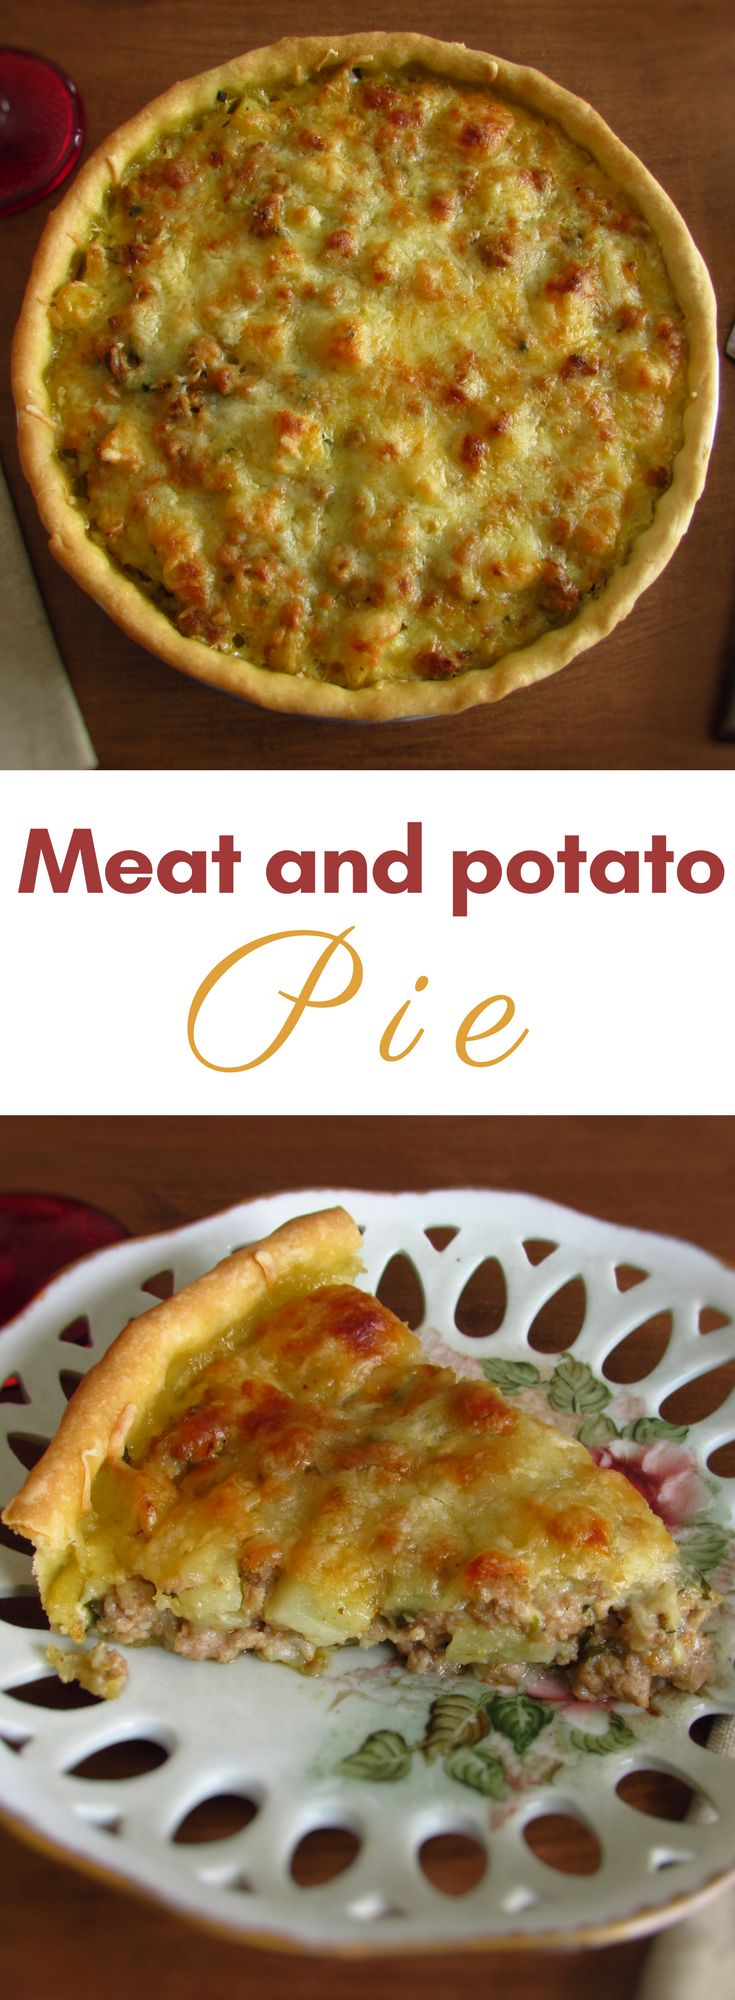 Meat and potato pie | Food From Portugal. Do not know what to do with the minced meat you have in the fridge? Prepare this delicious meat and potato pie recipe! It's simple, quite tasty and has excellent presentation! Bon appetit!!! #recipe #pie #meat